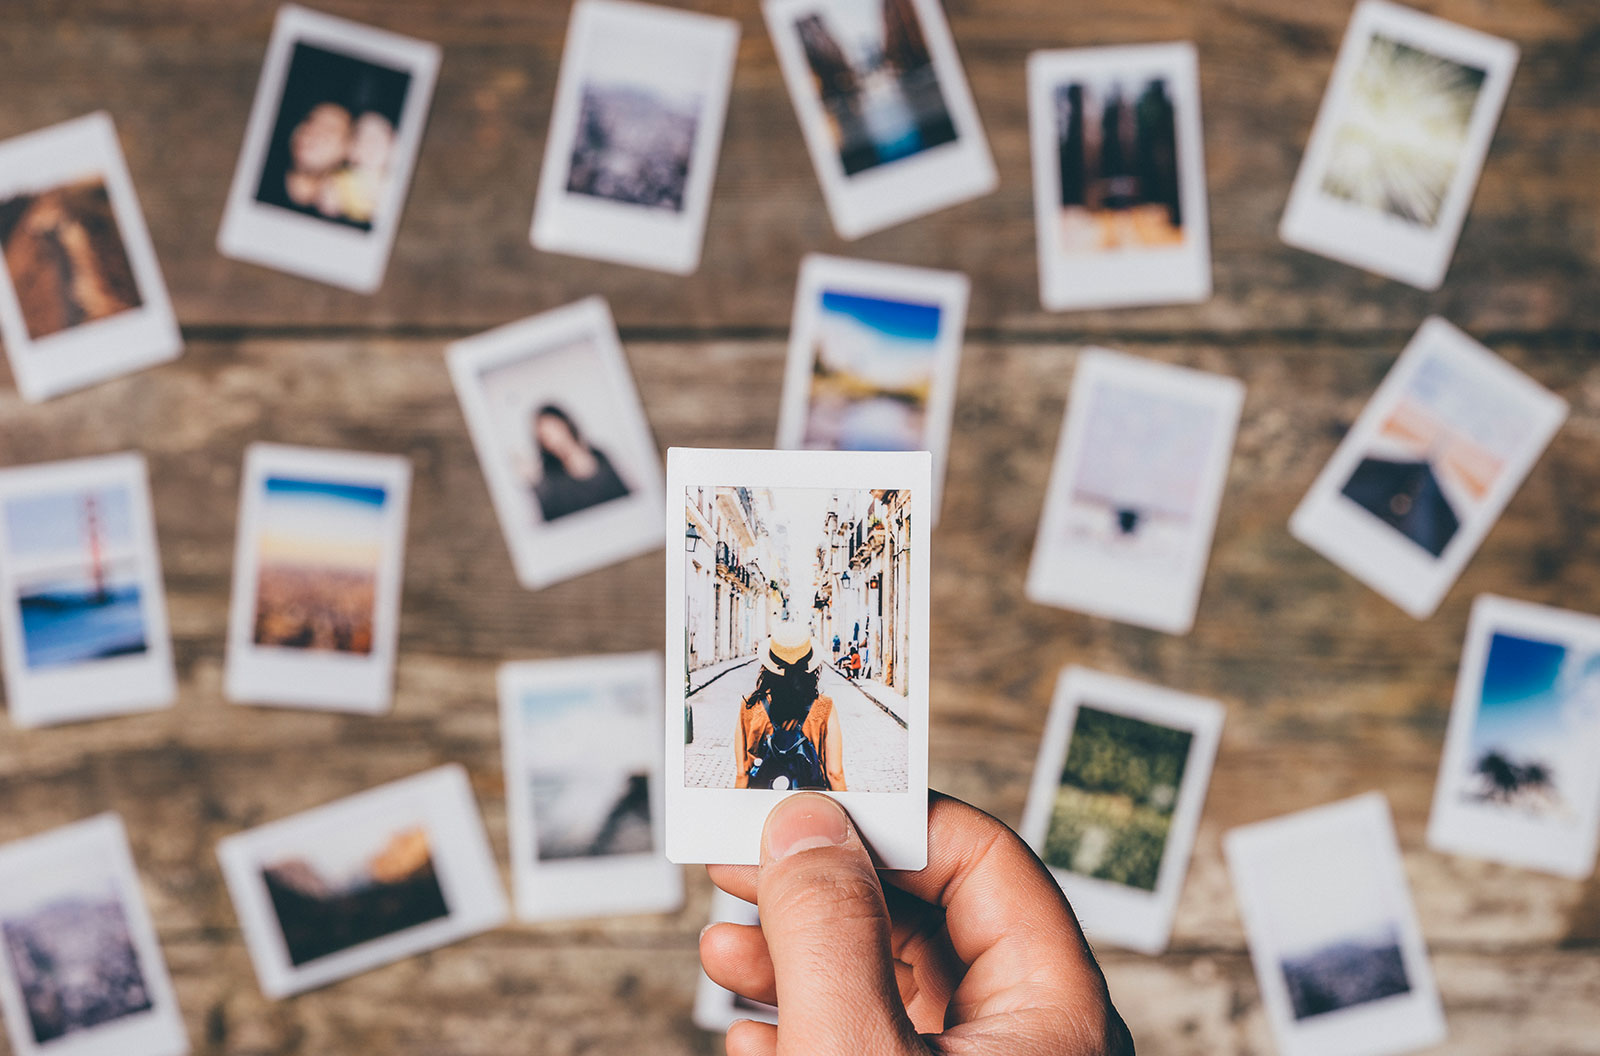 Top view of instant camera prints laid out on a table